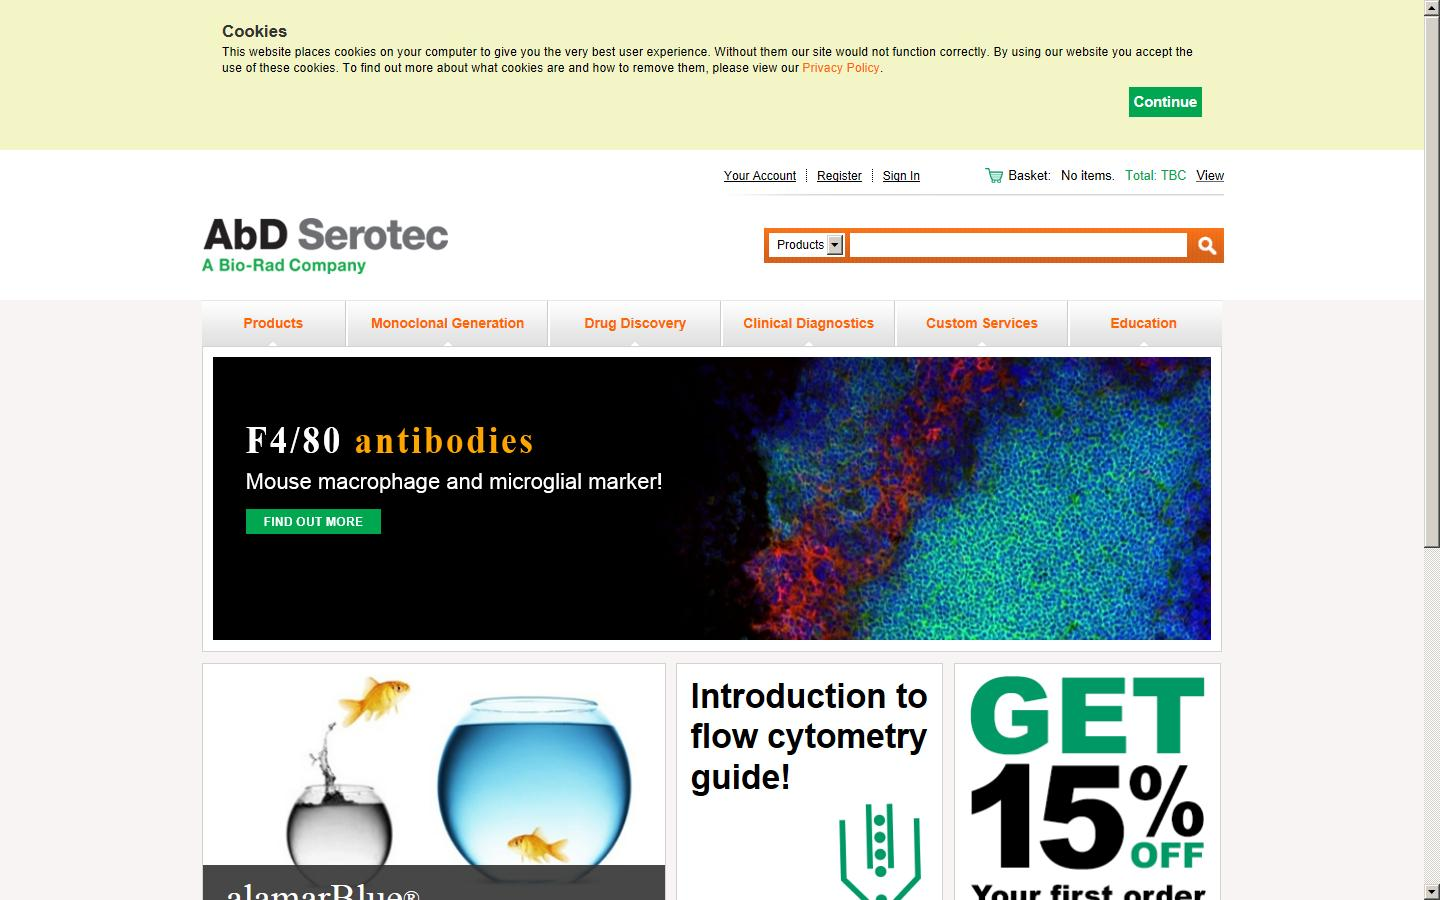 AbD Serotec Has Been One Of The World Leaders In Antibody Production Supplying Thousands Catalog Antibodies Kits And Accessories To Scientific